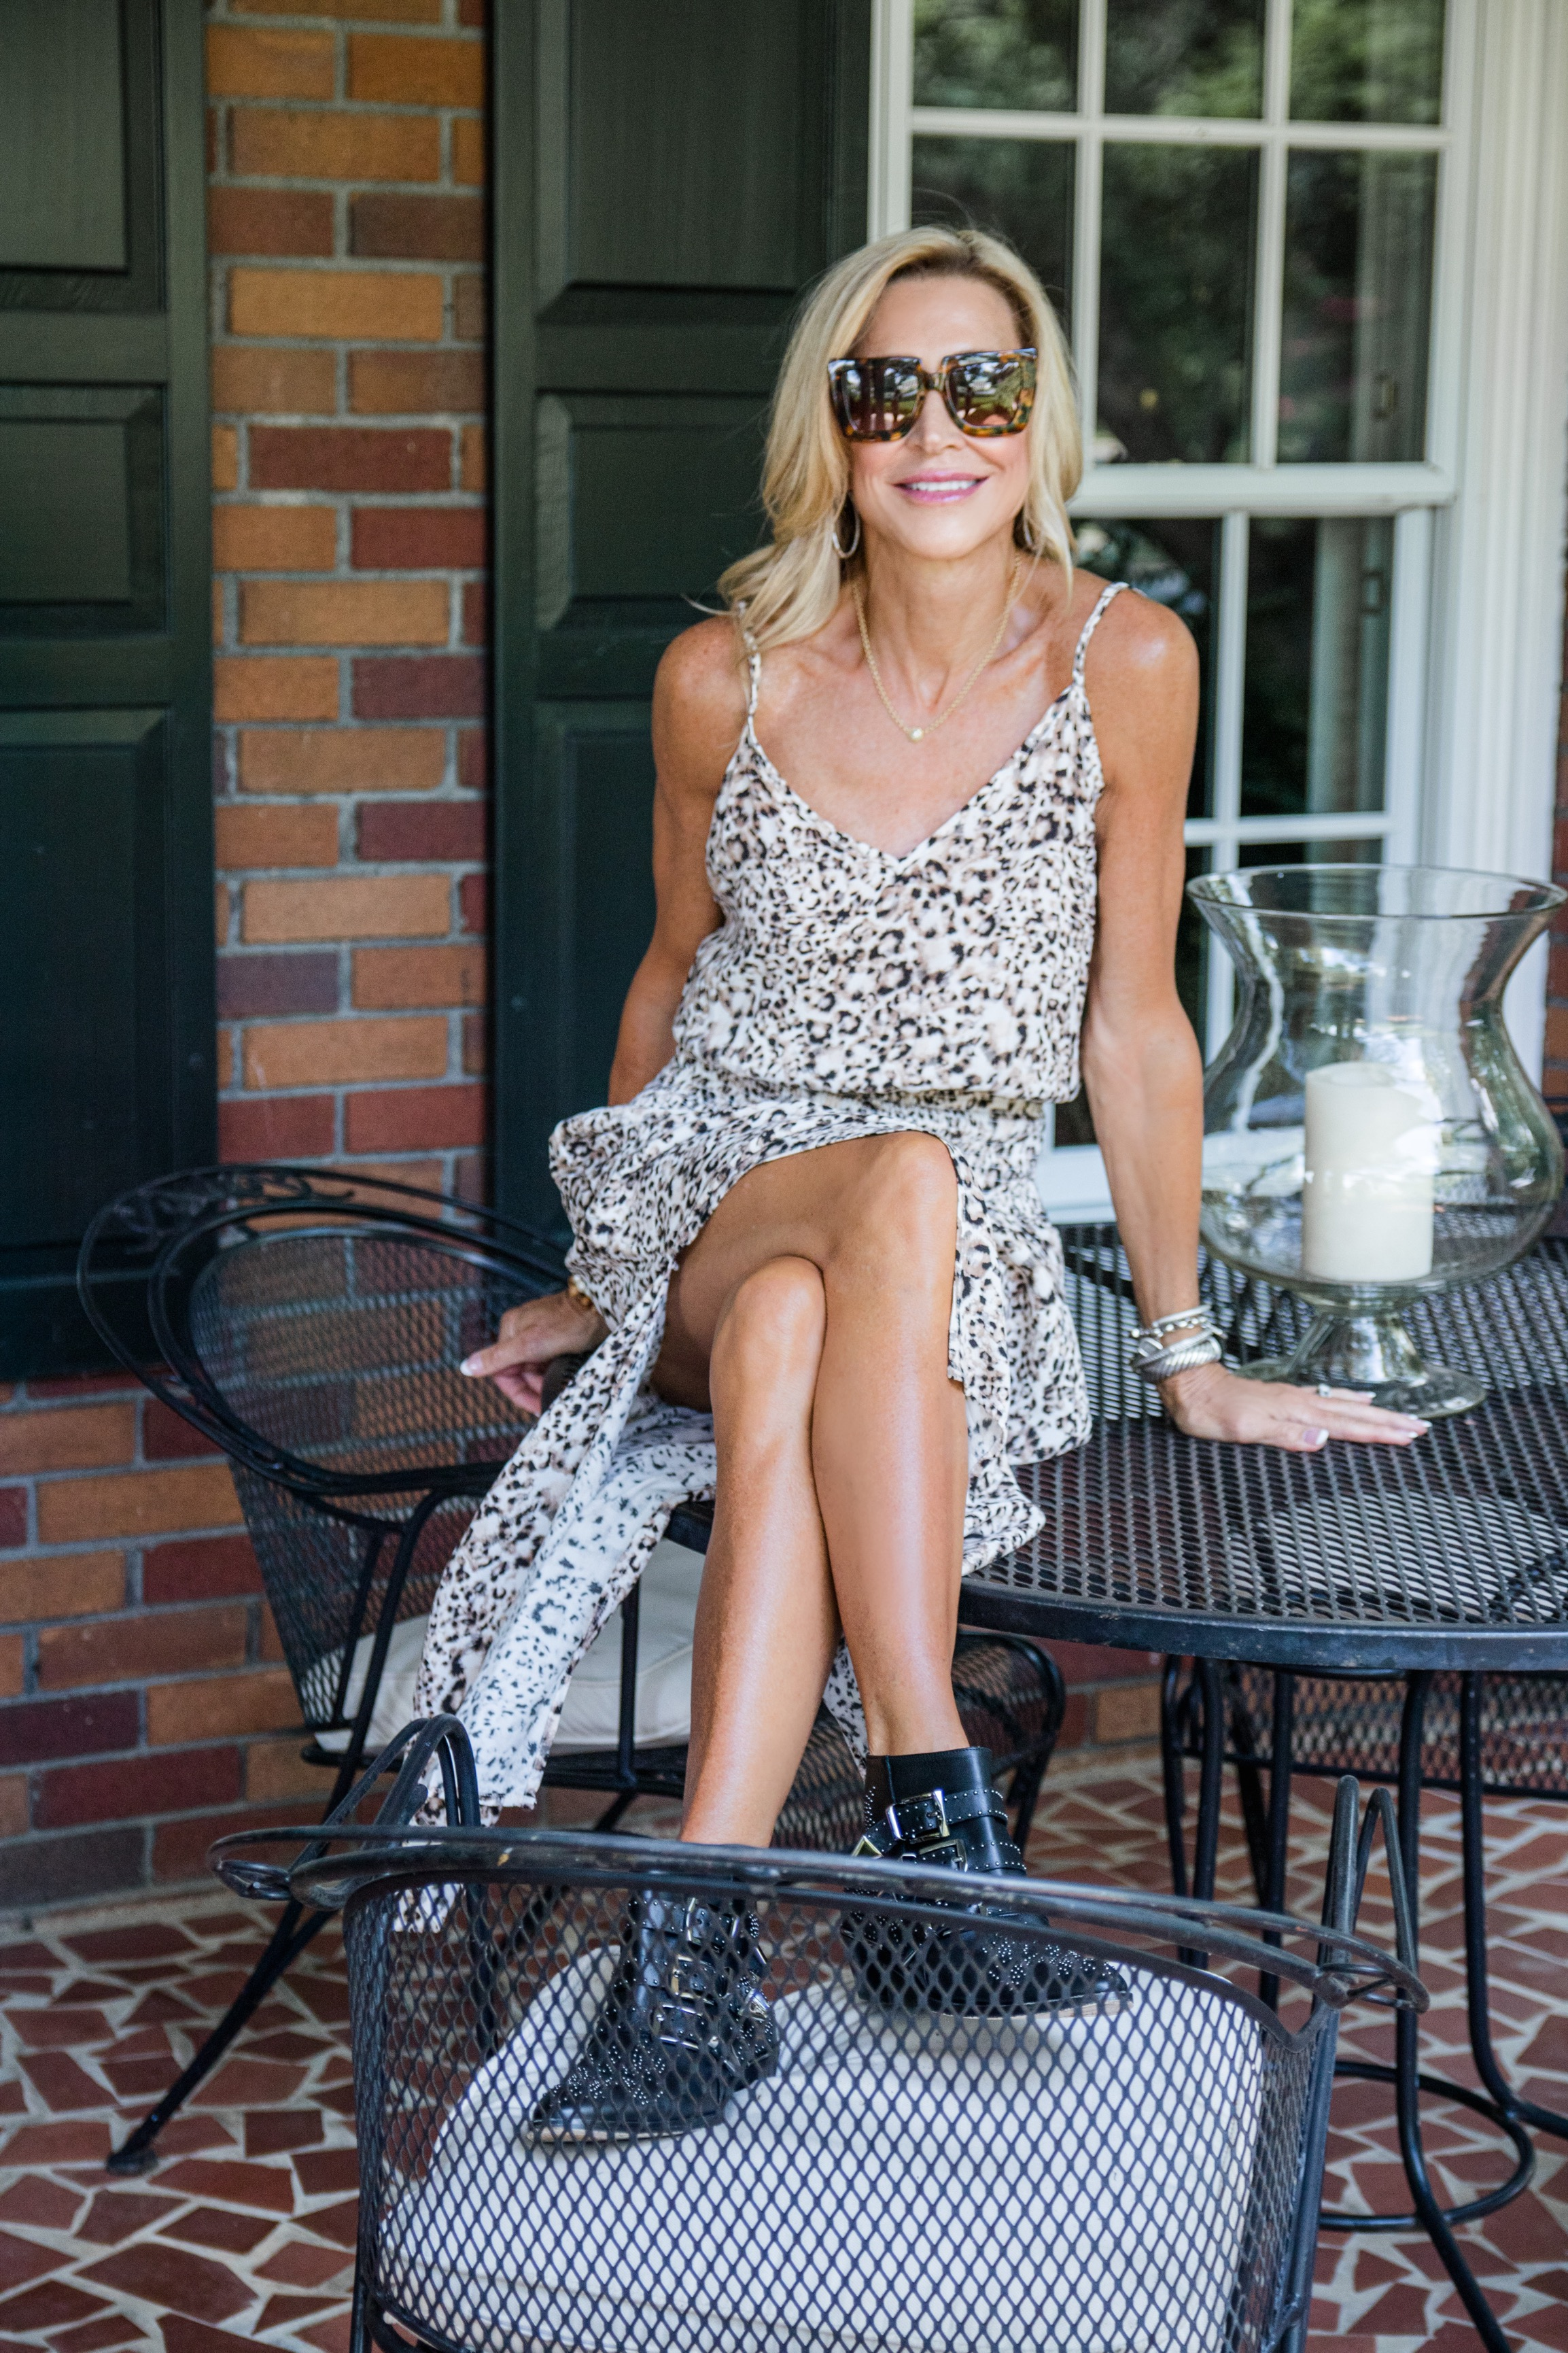 Blue Life leopard print dress with Chloé Susanna booties - Fall transitional outfit idea - Crazy Blonde Style